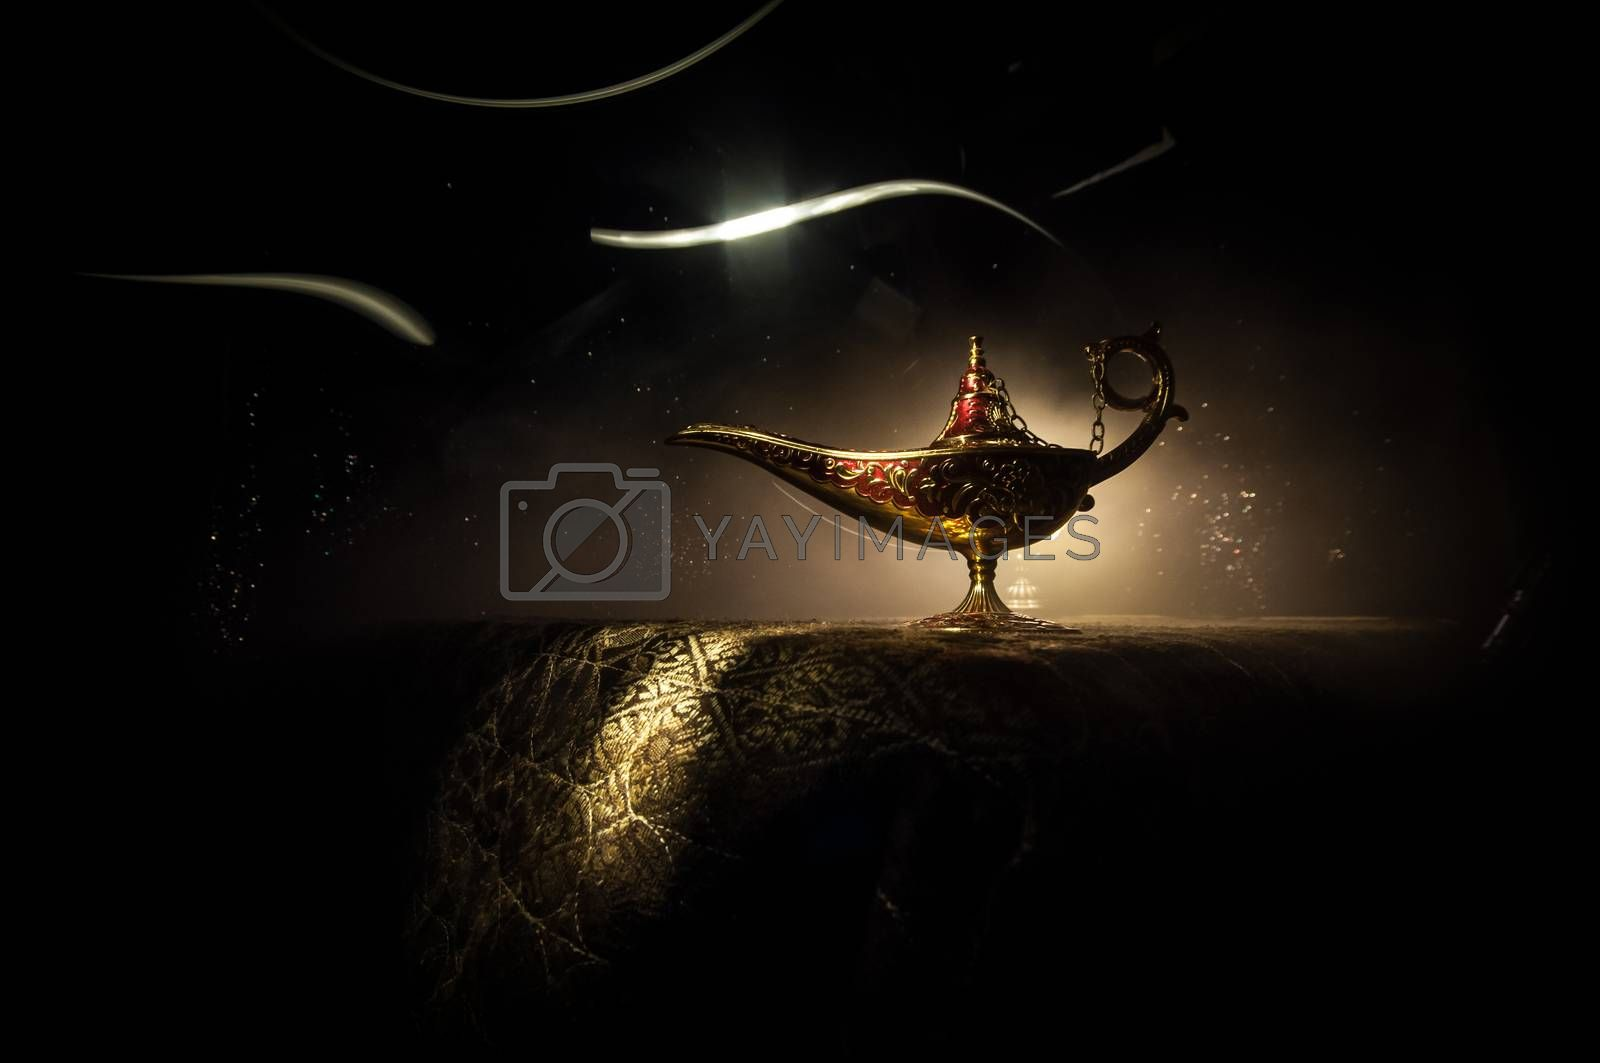 Antique Aladdin arabian nights genie style oil lamp with soft light white smoke, Dark background. Lamp of wishes concept